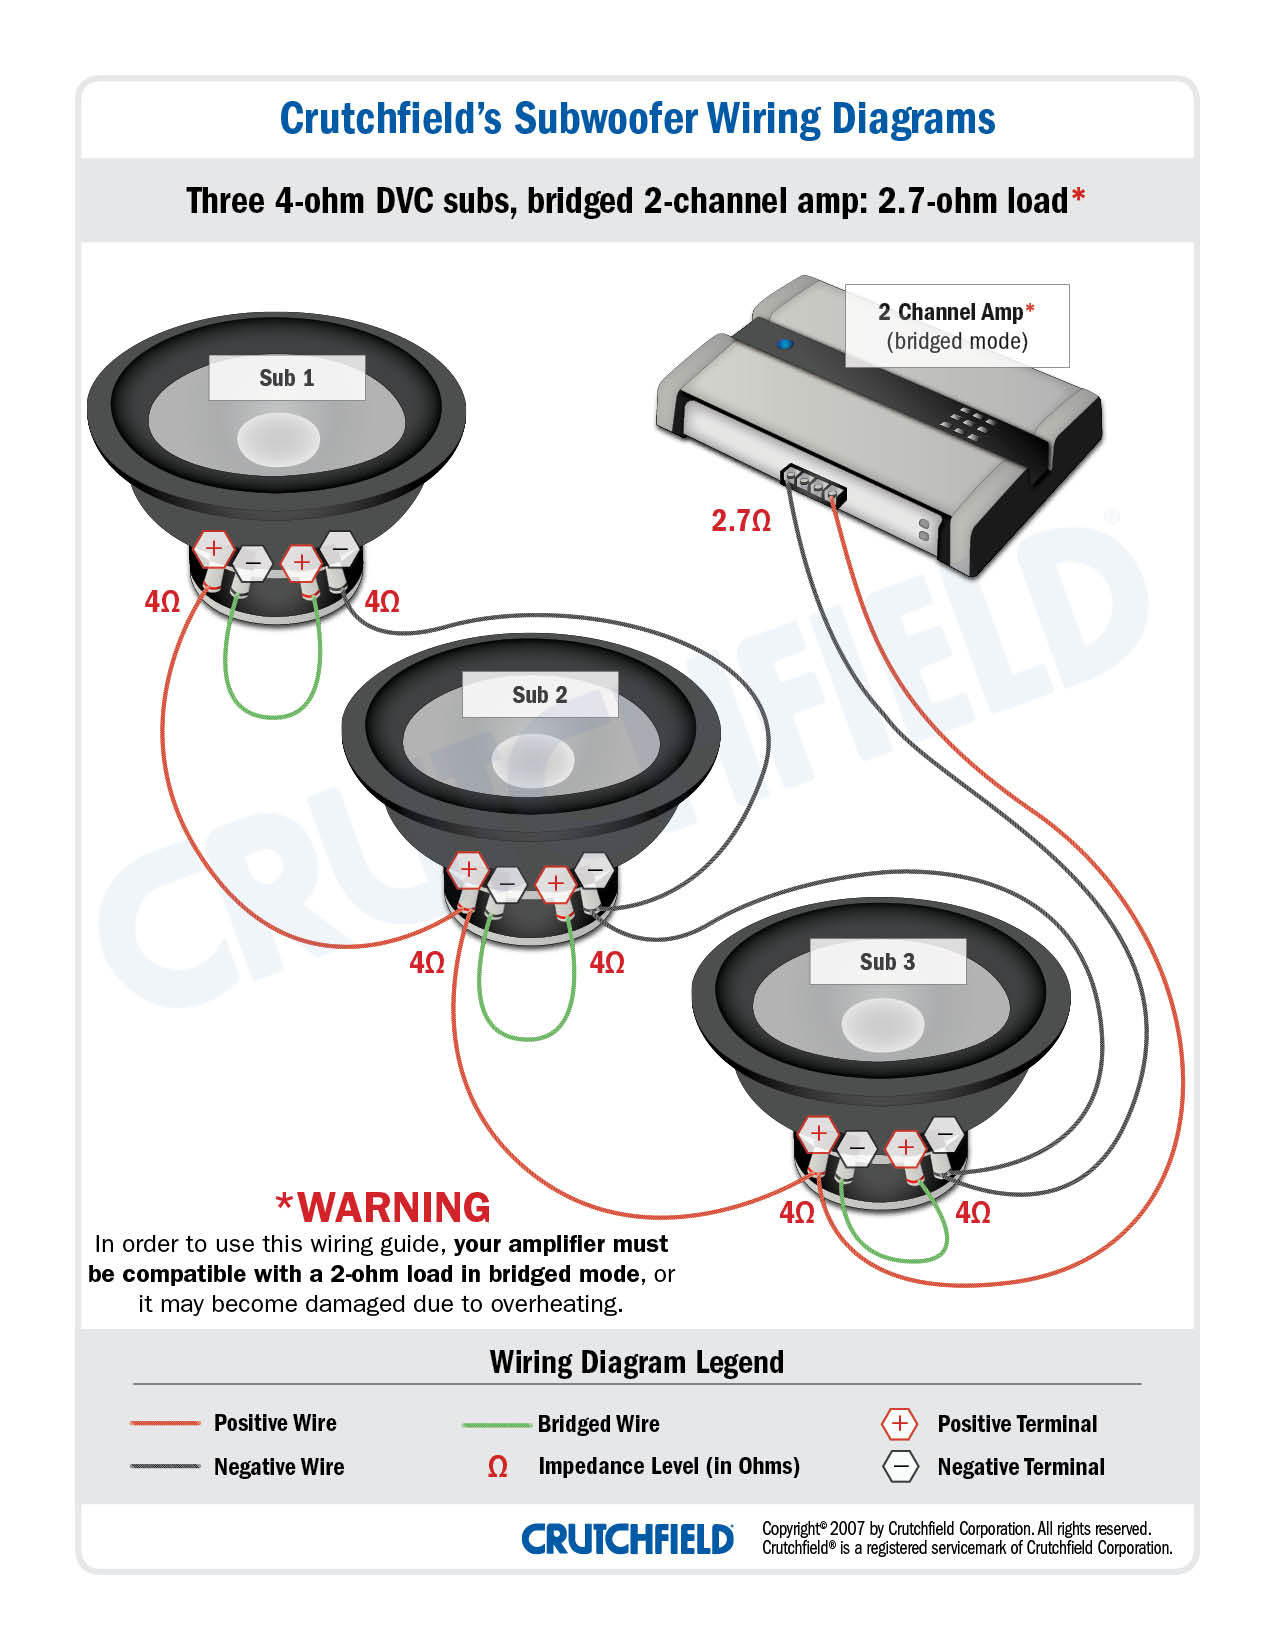 3 DVC 4 ohm 2 ch low imp dual 4 ohm wiring diagram 2 ohm dvc wiring \u2022 free wiring diagrams 4 ohm speaker wiring diagram at creativeand.co